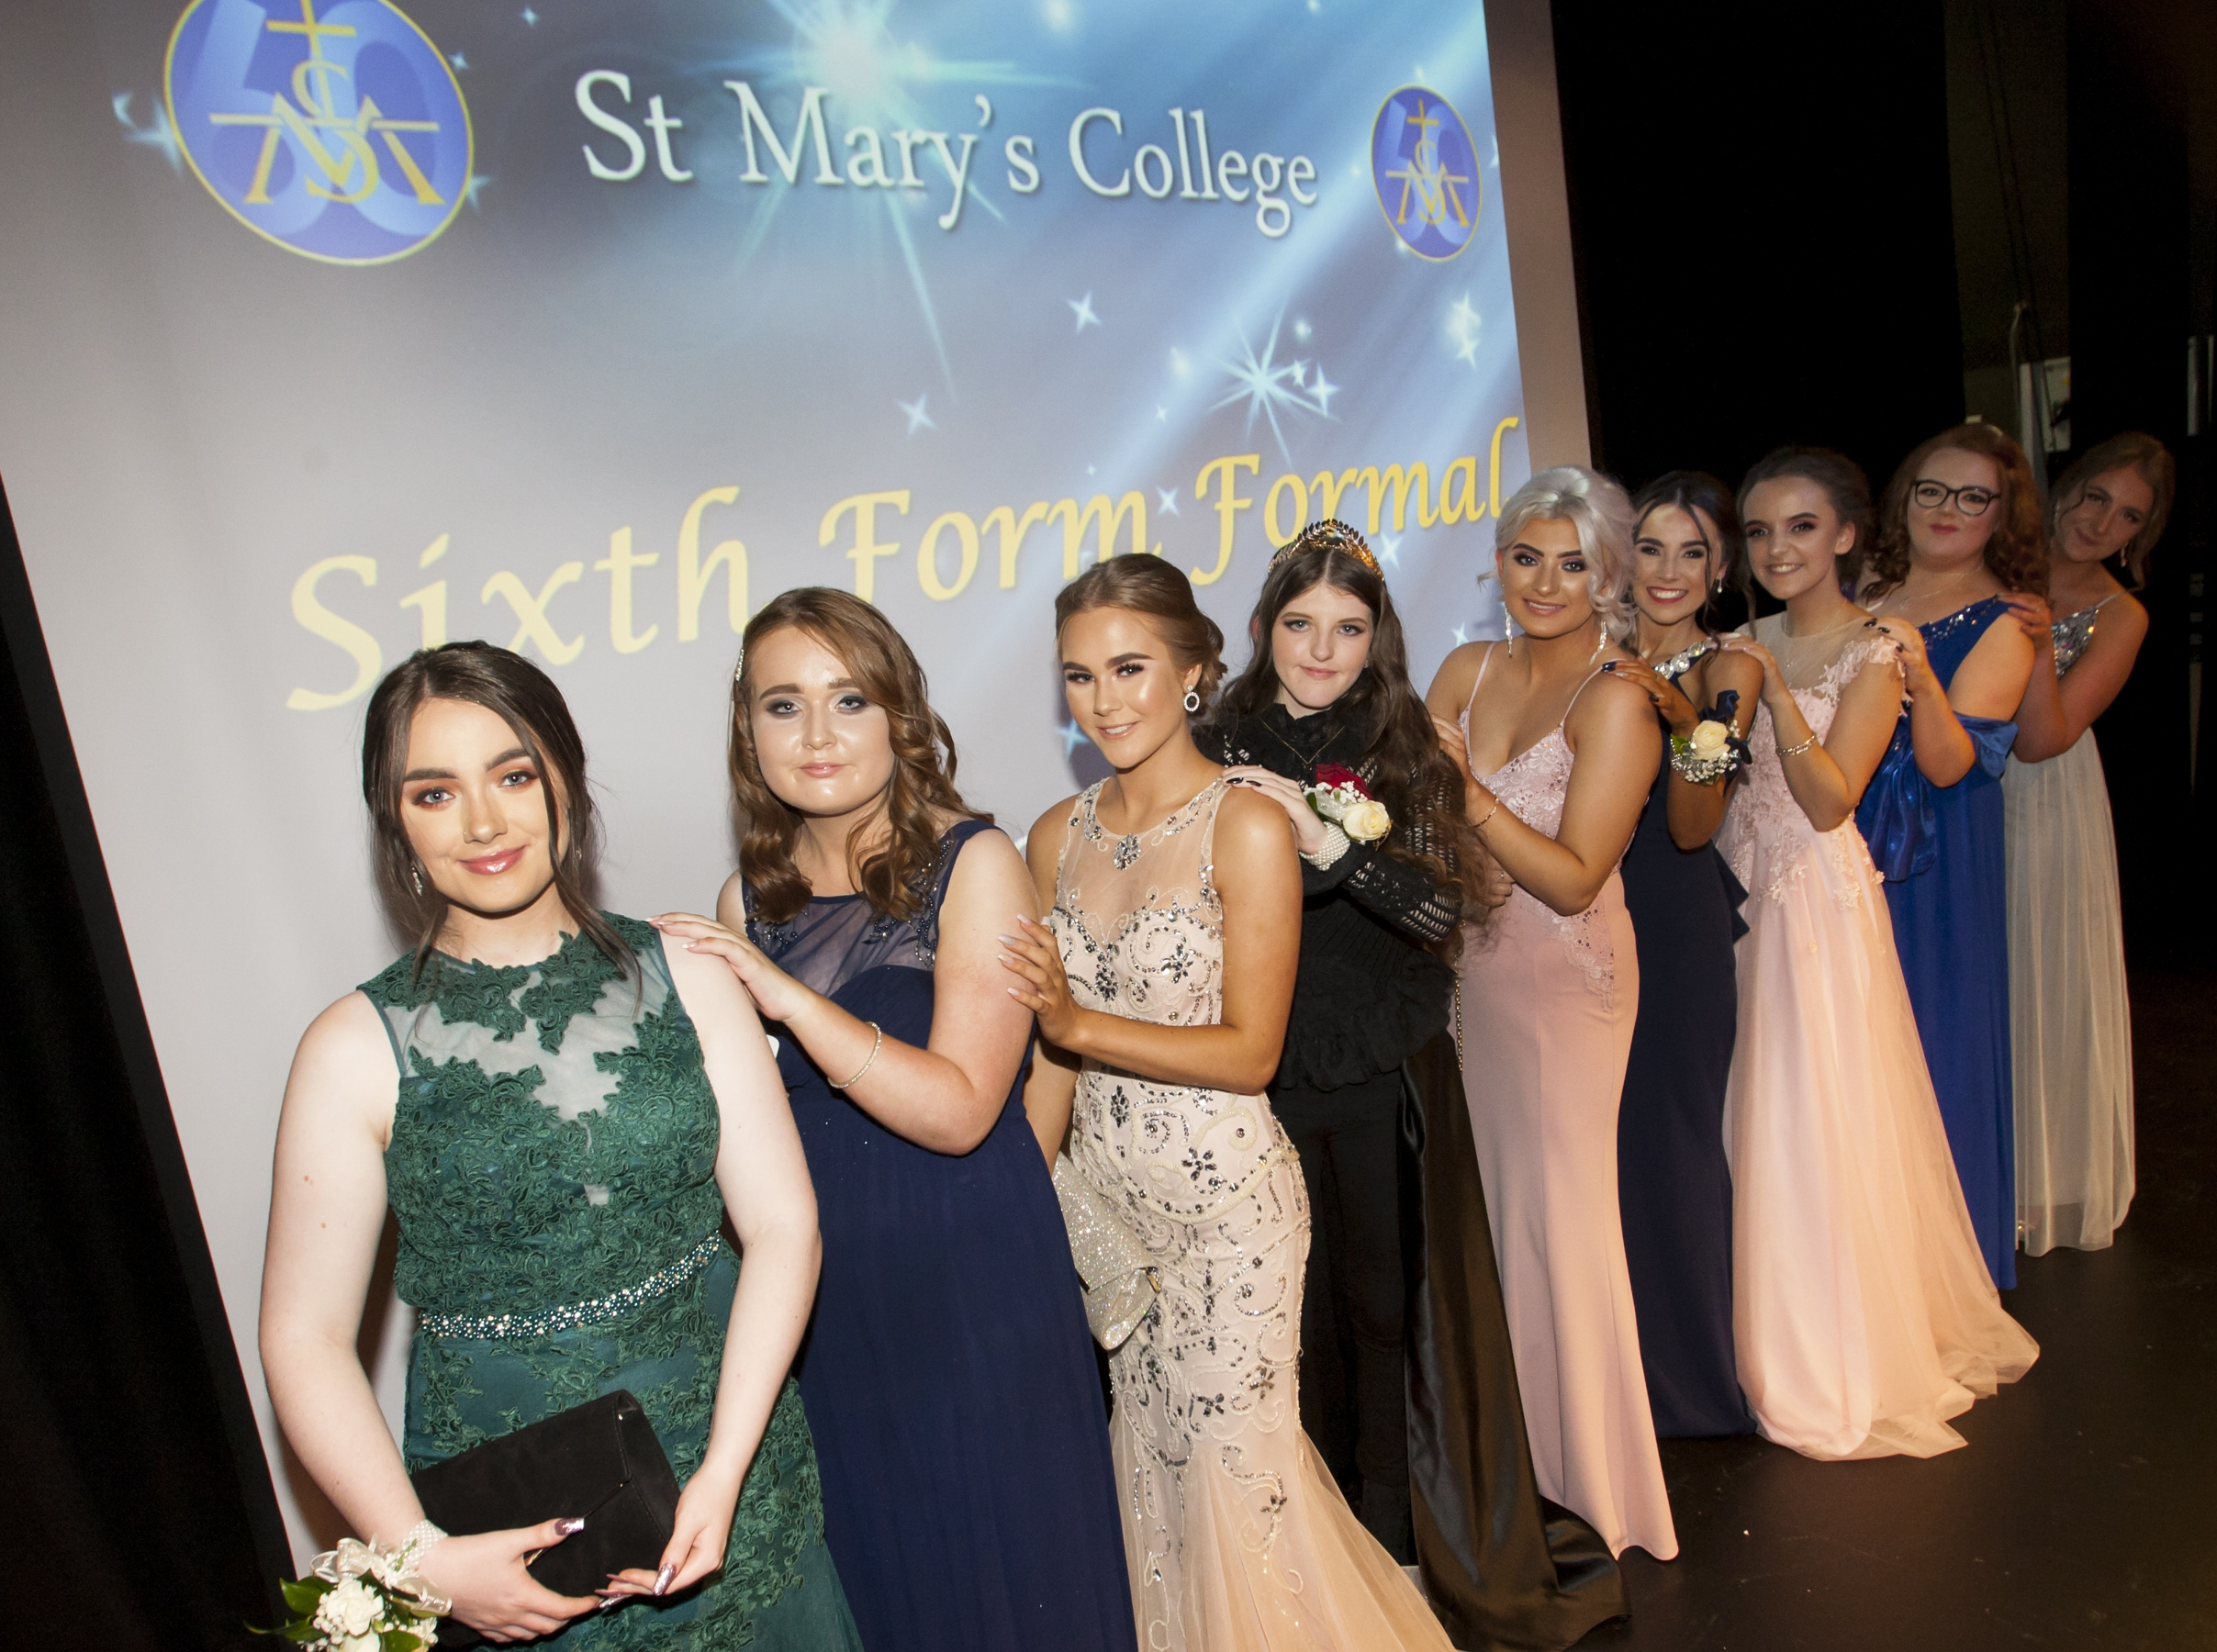 Some of the Class of 2019 pictured at the St. Mary's College Annual Formal on Thursday night last.